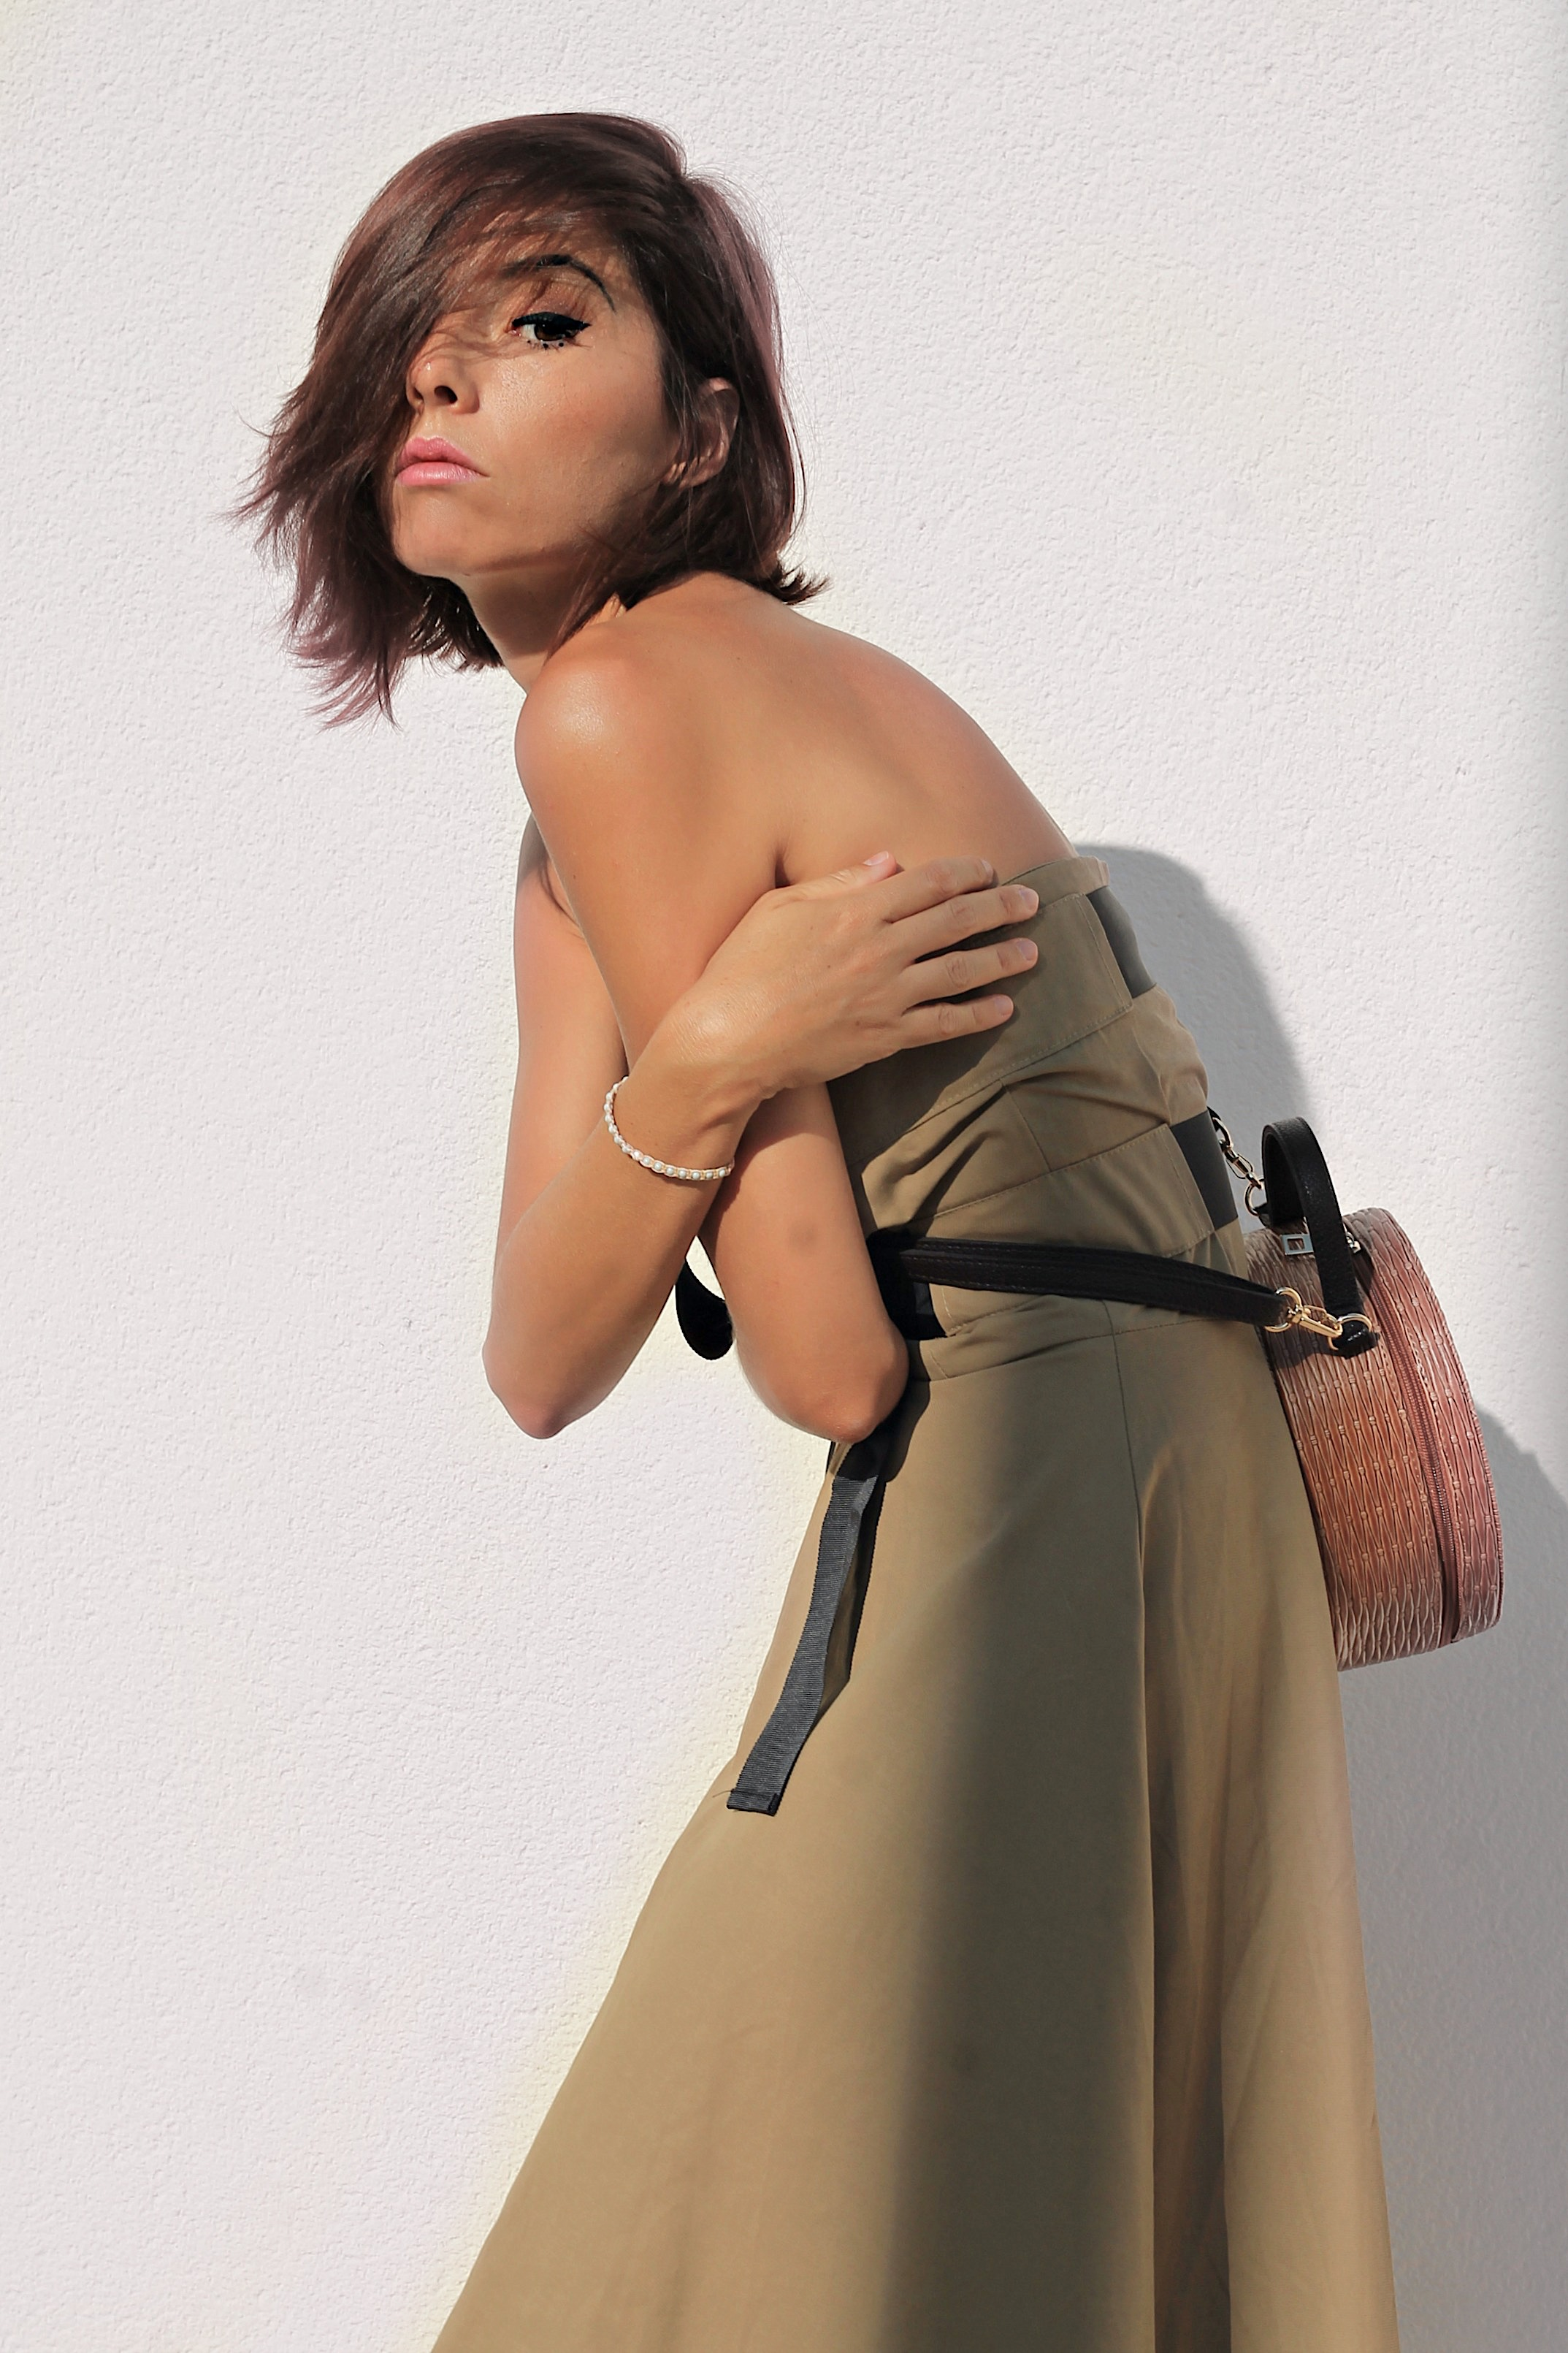 TENDENZE DI MODA DEL MOMENTO, theladycracy.it, elisa bellino, stivali calzino zara, style mafia dress, blogger outfit 2017, minimal blogger outfit, fashion blog italiane 2017, fashion blog italiani 2017, blogger moda 2017, blog moda 2017, blogger moda più seguite 2017, blogger moda famose 2017, fashion blogger famose 2017, minimal style blogger, fashion blogger milano 2017